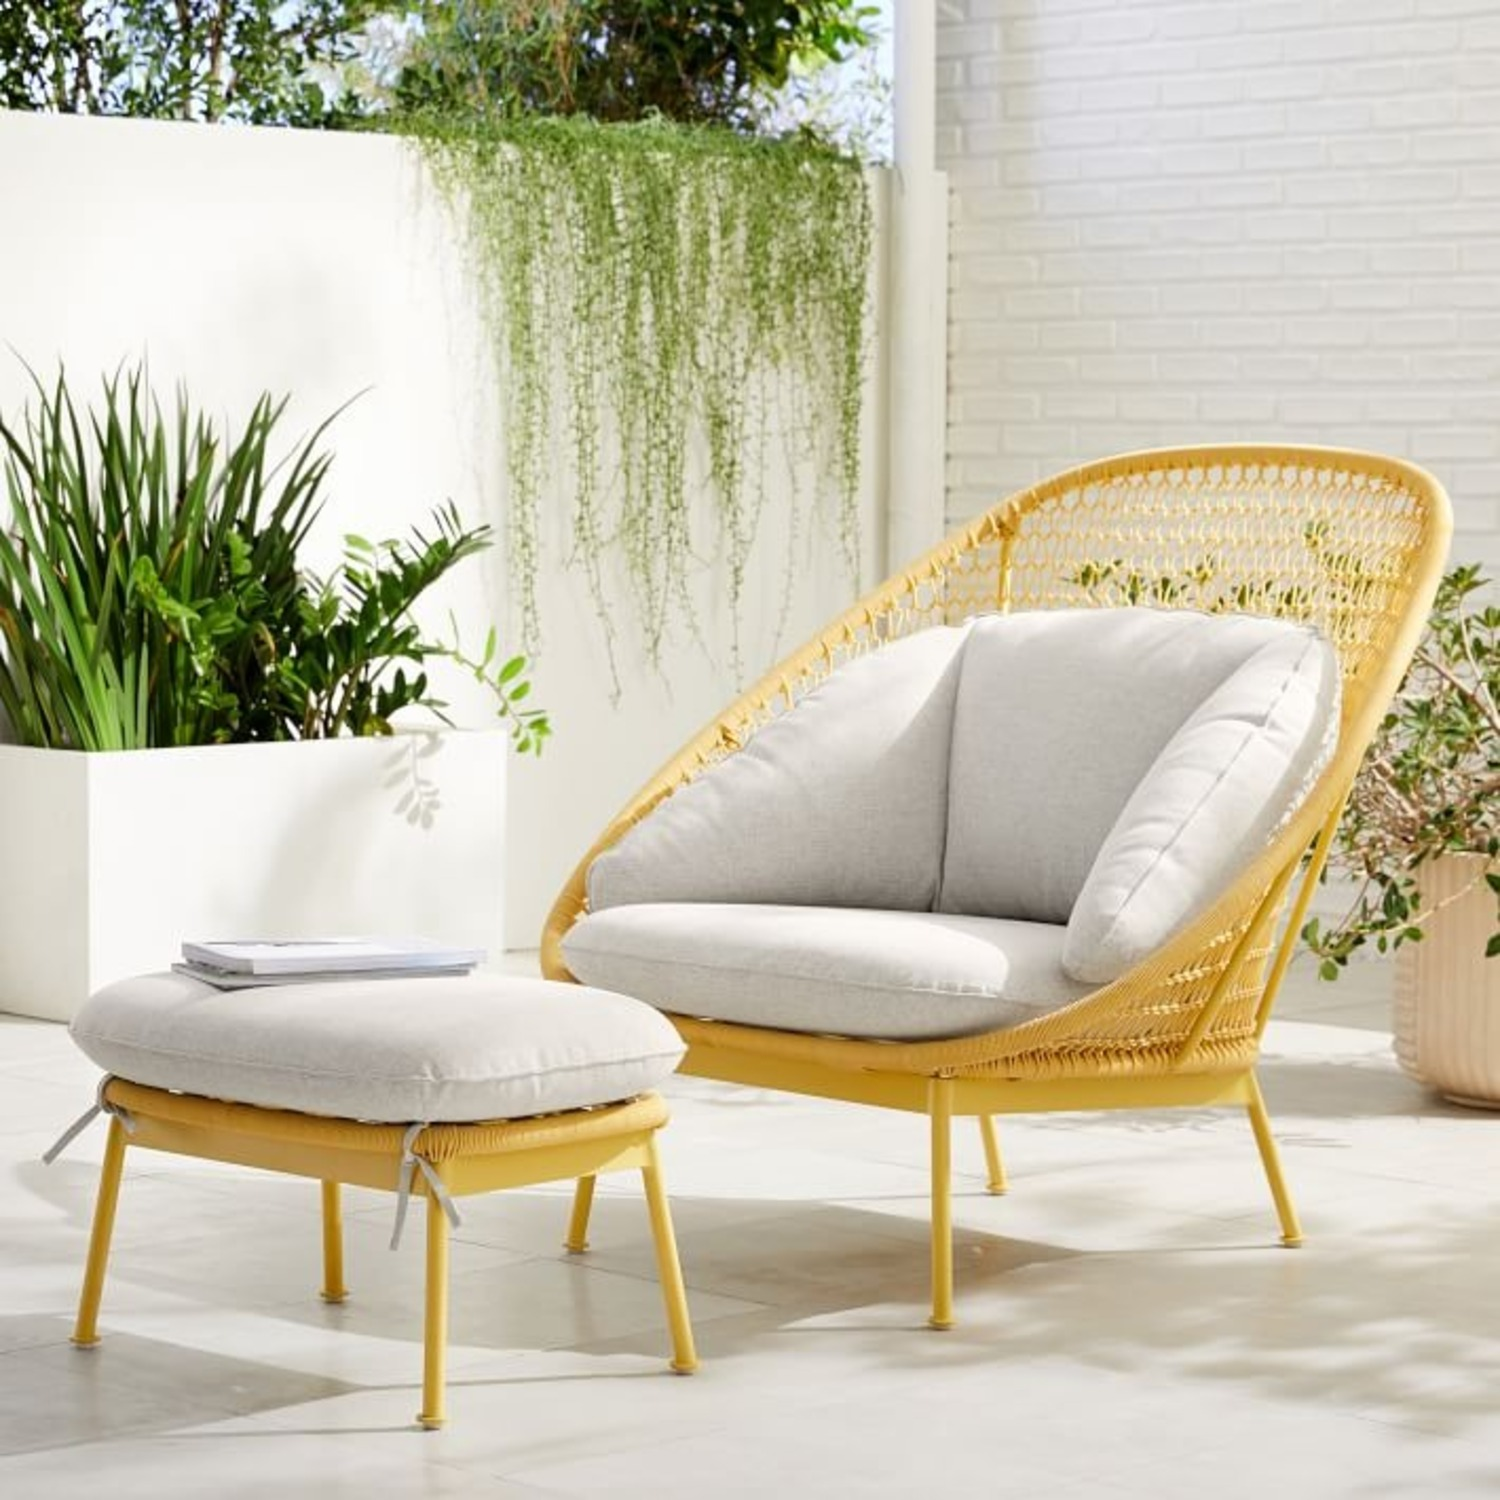 West Elm Nest Sunshine Lounge Chair + Ottoman - image-3